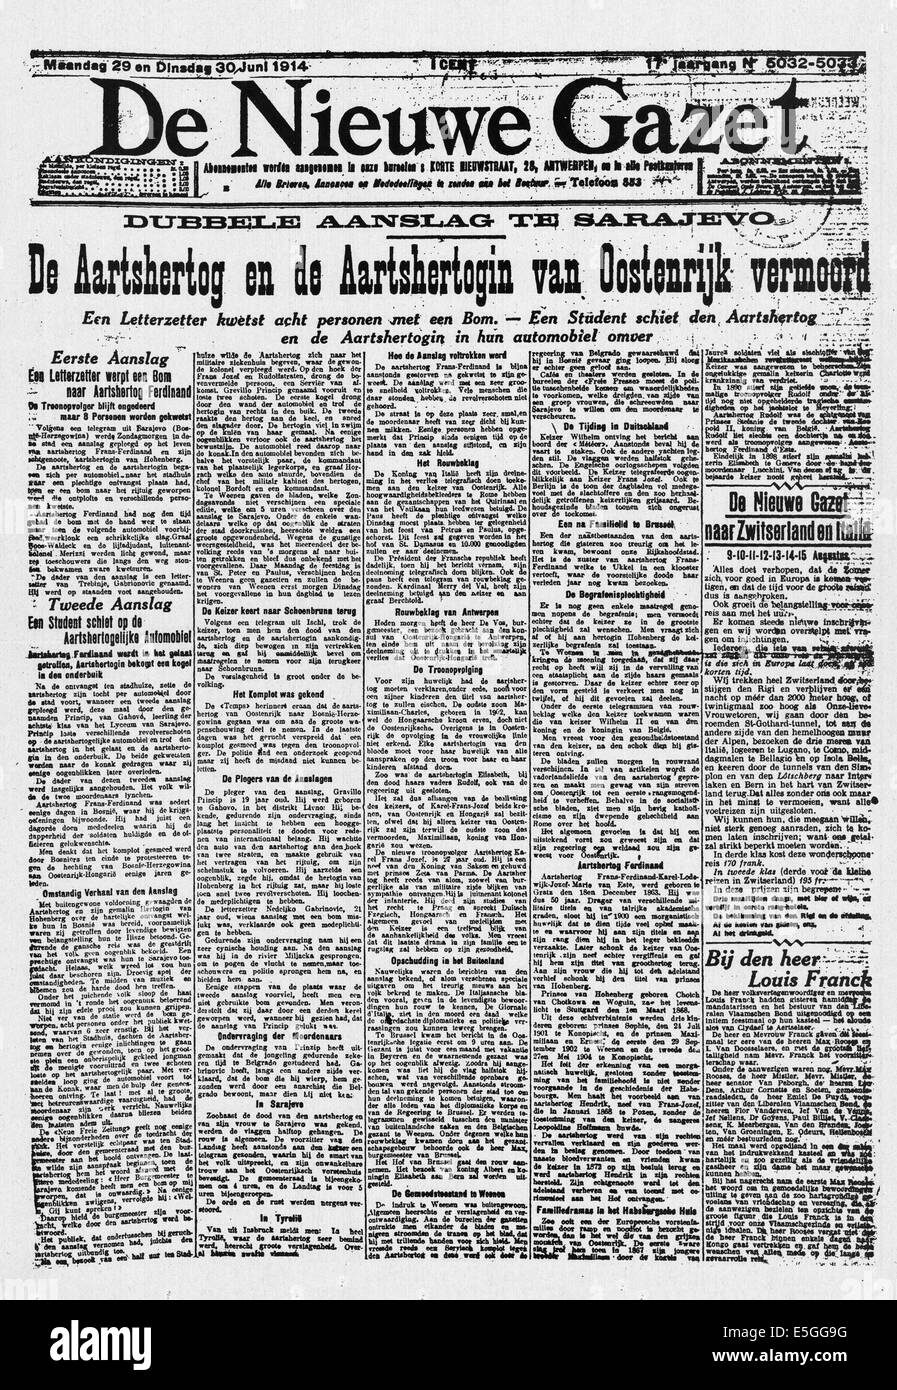 1914 De Nieuwe Gazet front page reporting the Assassination of Archduke Franz Ferdinand of Austro-Hungary by Bosnian - Stock Image